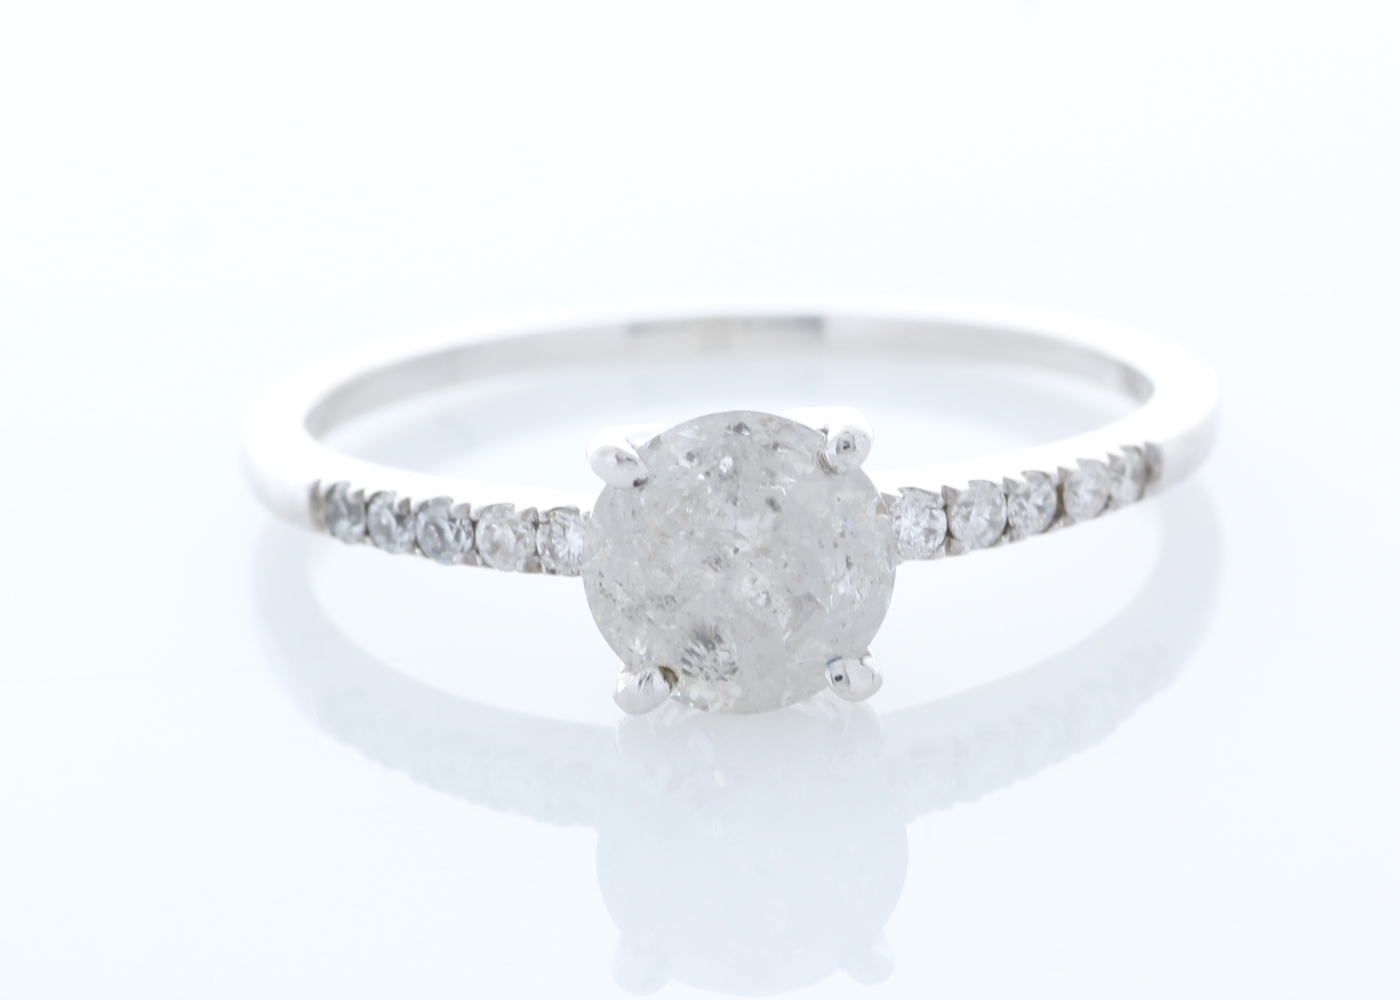 18ct White Gold Stone Set Shoulders Diamond Ring 1.05 Carats - Image 2 of 4